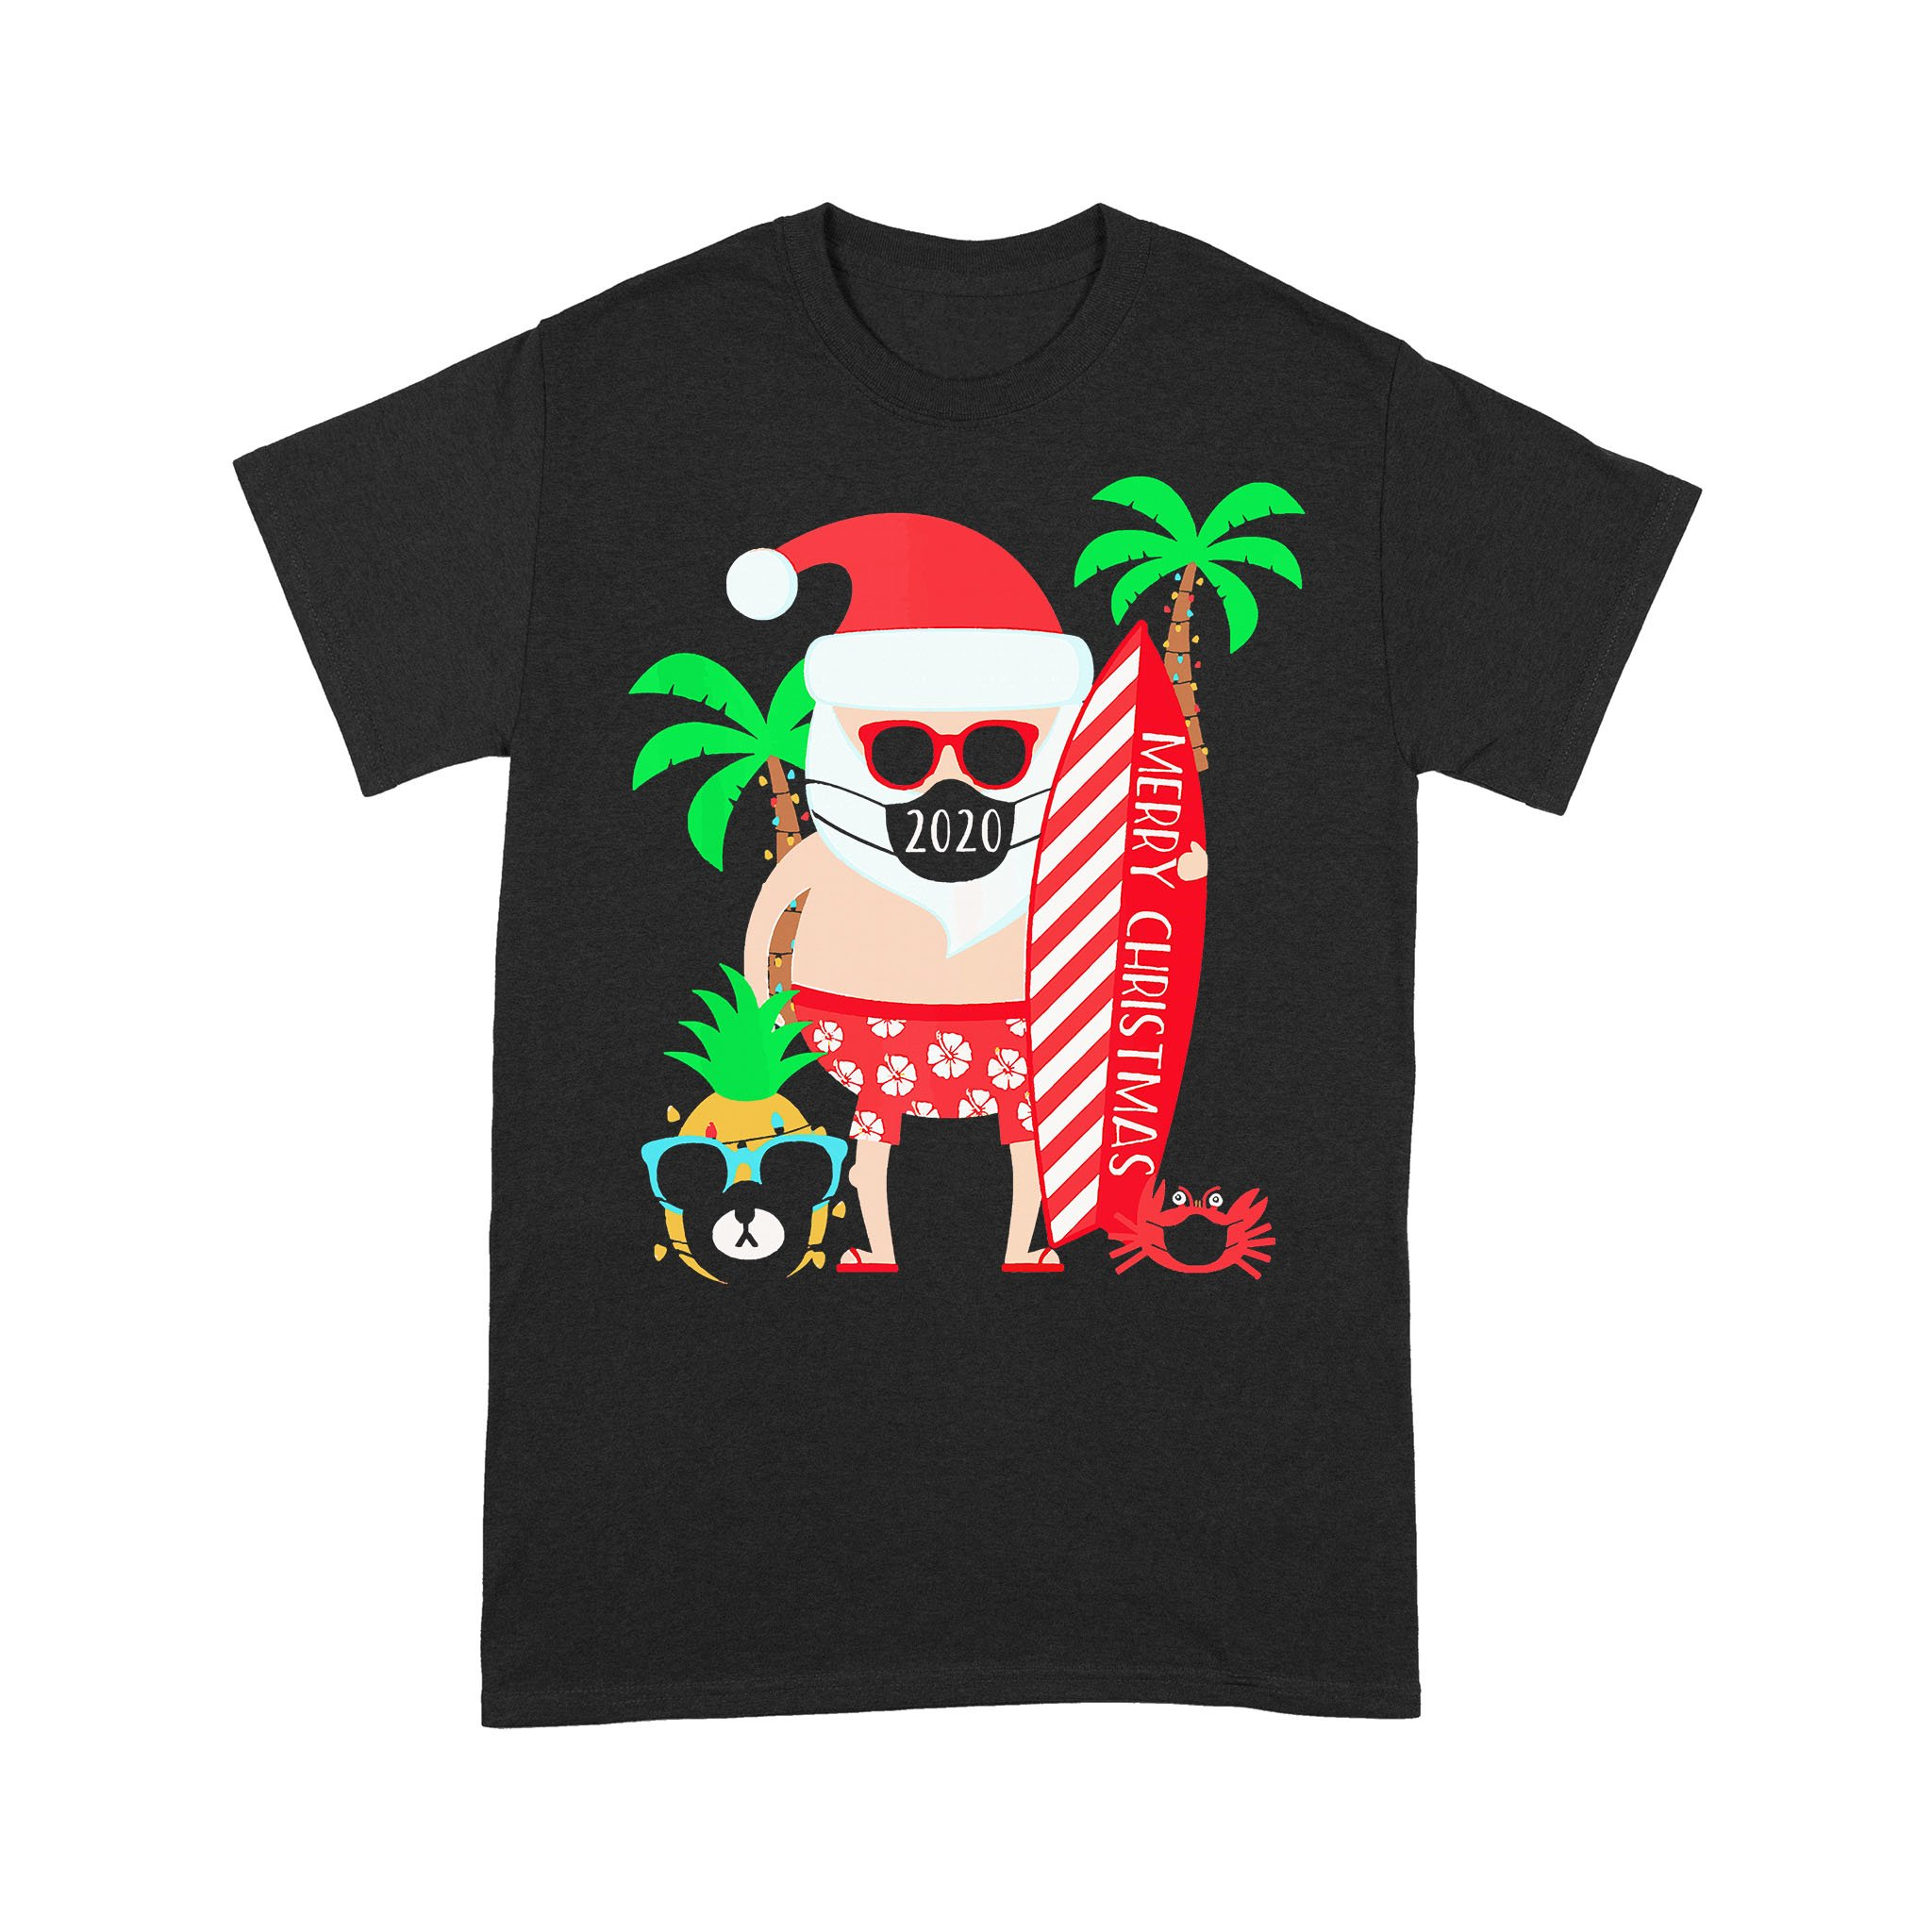 Christmas Surfing Santa Face Mask T-shirt